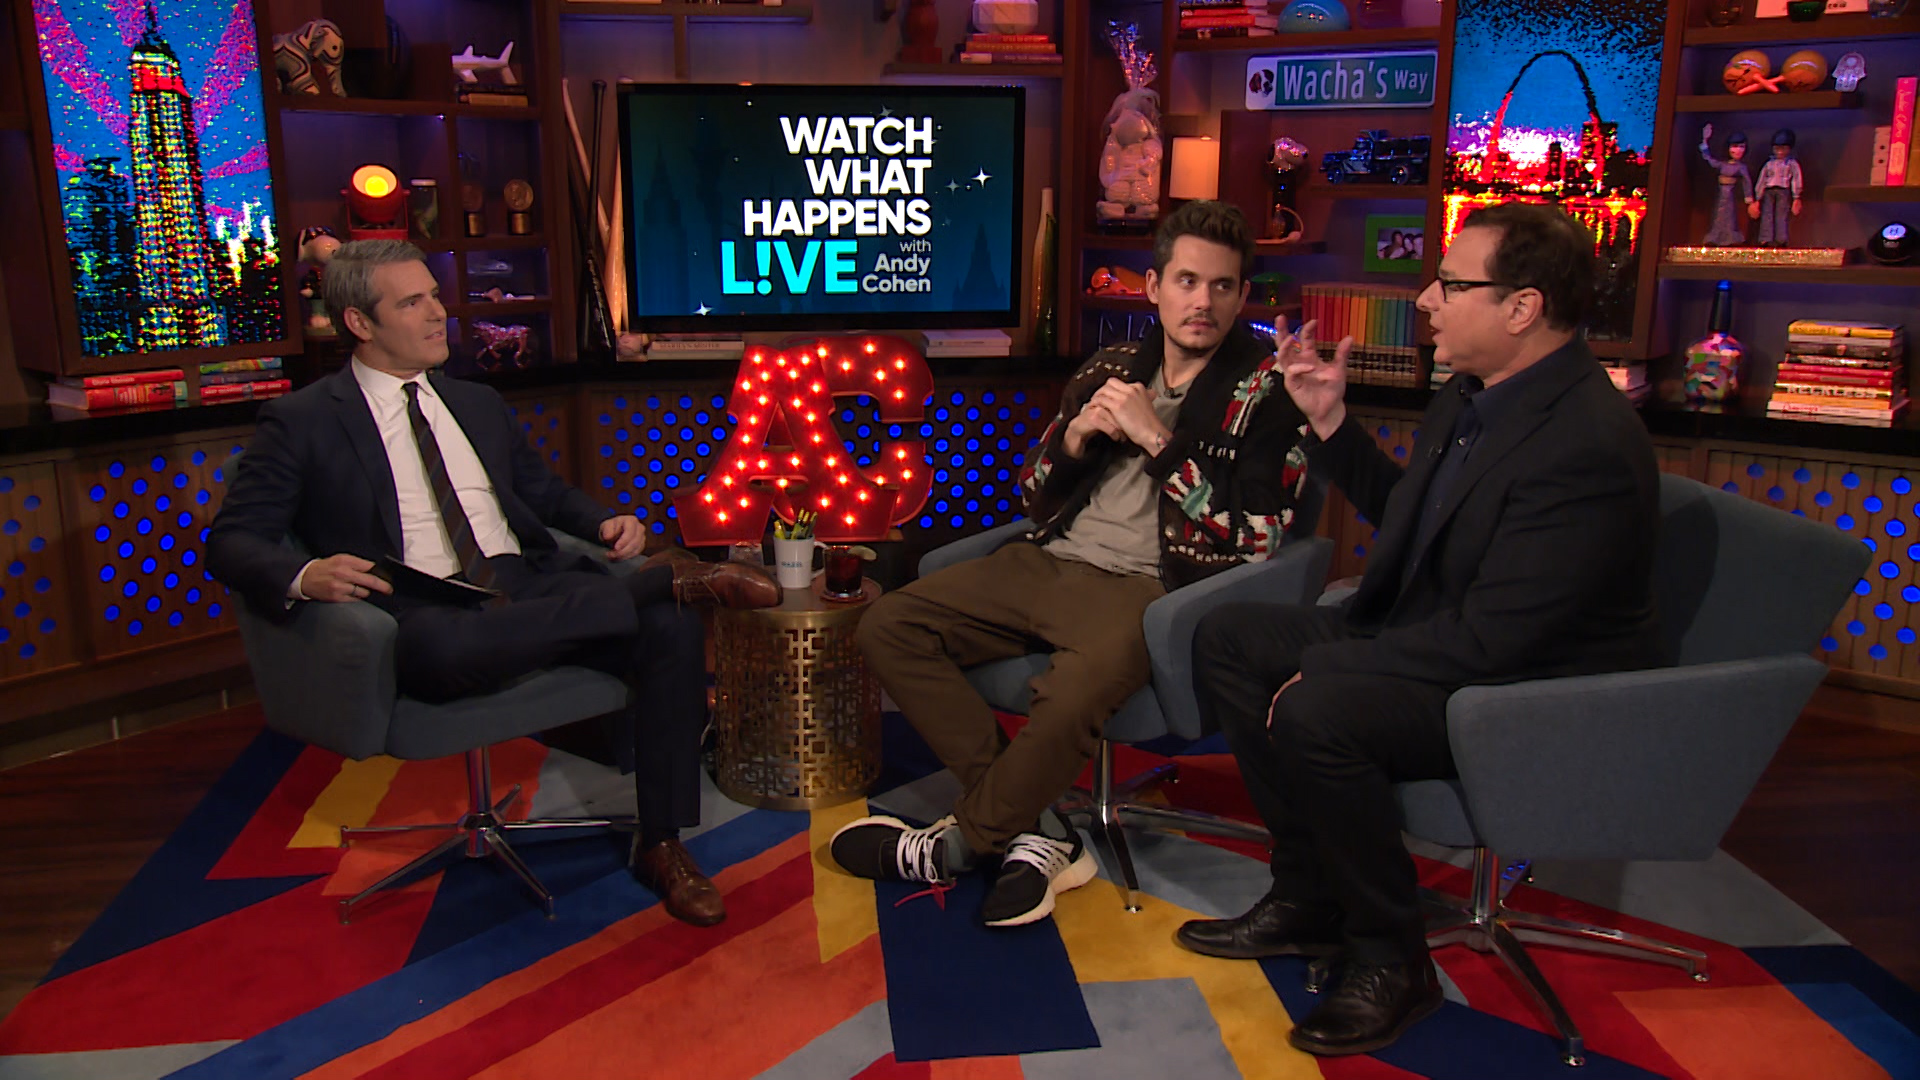 Andy cohen john mayer on brazil vacation the daily dish a wwhl caller asks andy cohen and bob saget what their favorite parts were of john mayers epic 40th birthday trip and bob shares how special john is to him m4hsunfo